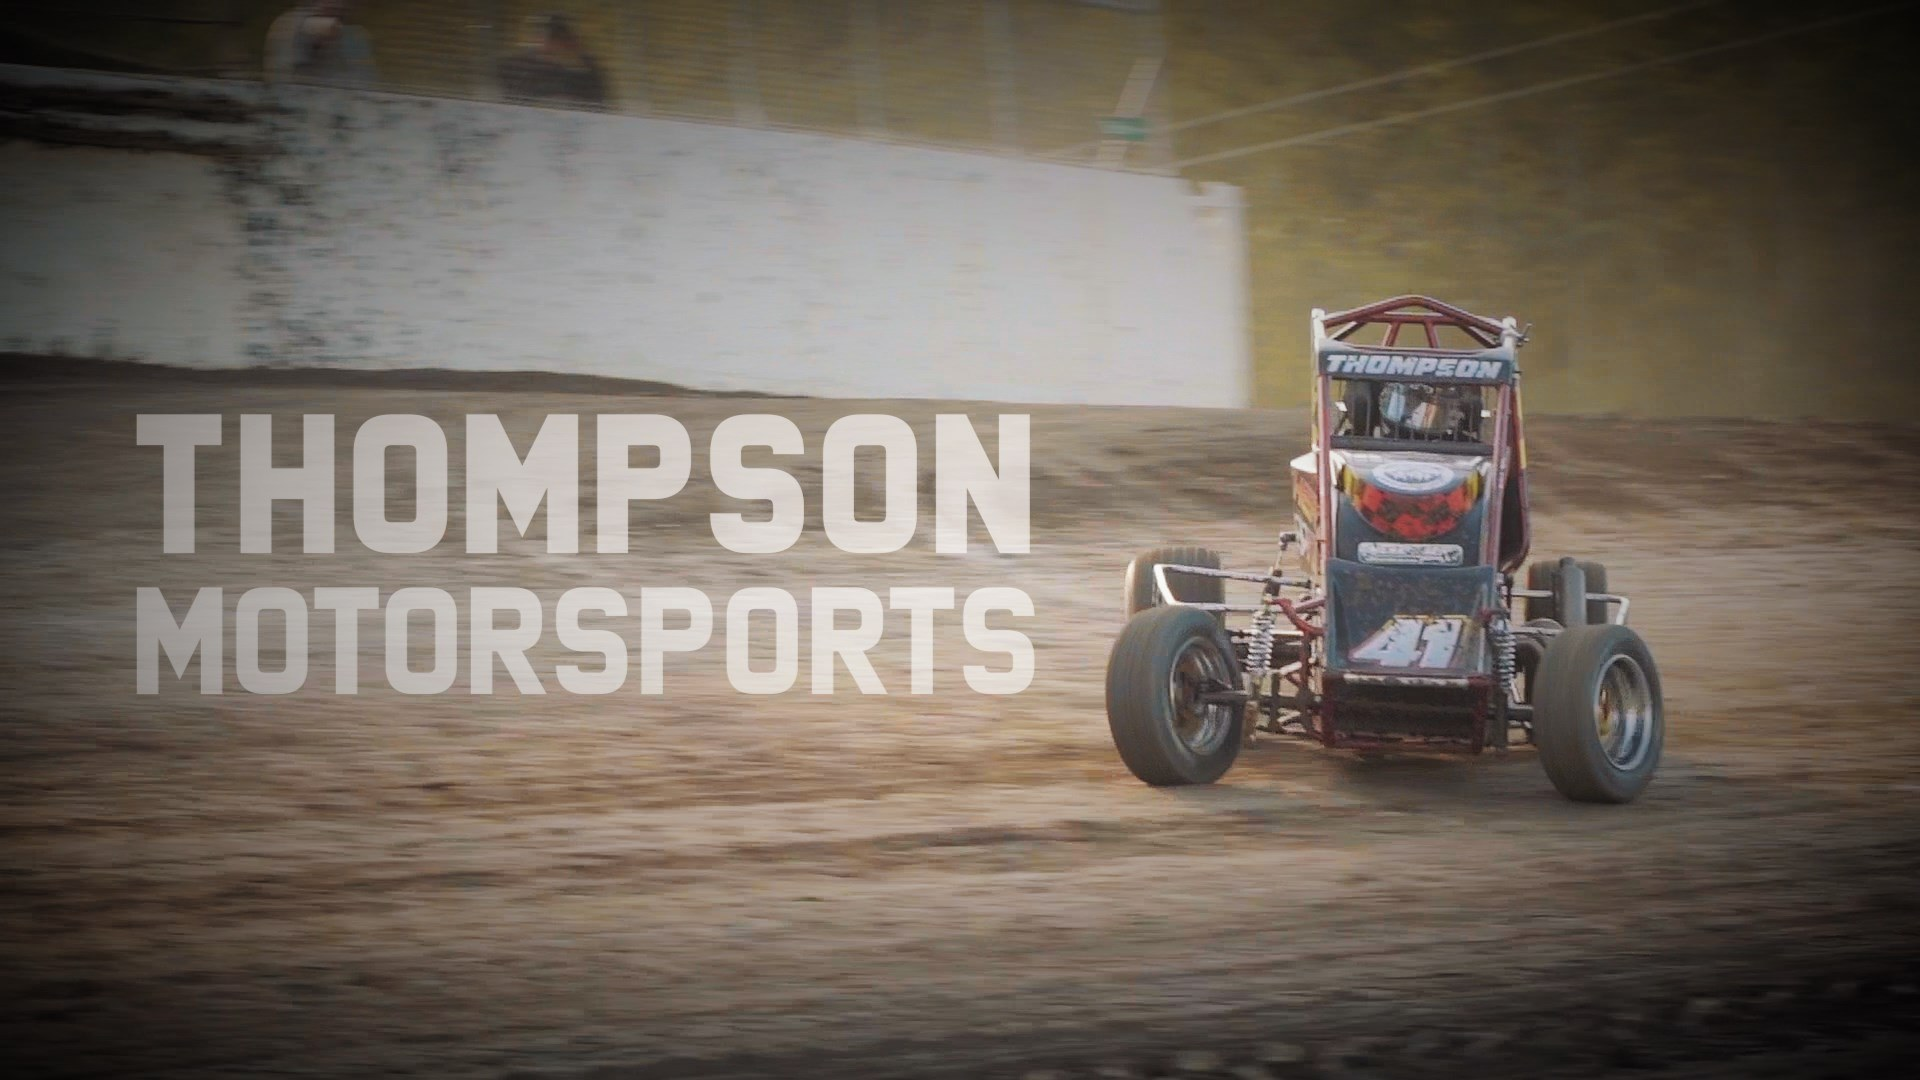 Thompson Motorsports #41: Behind the Scenes